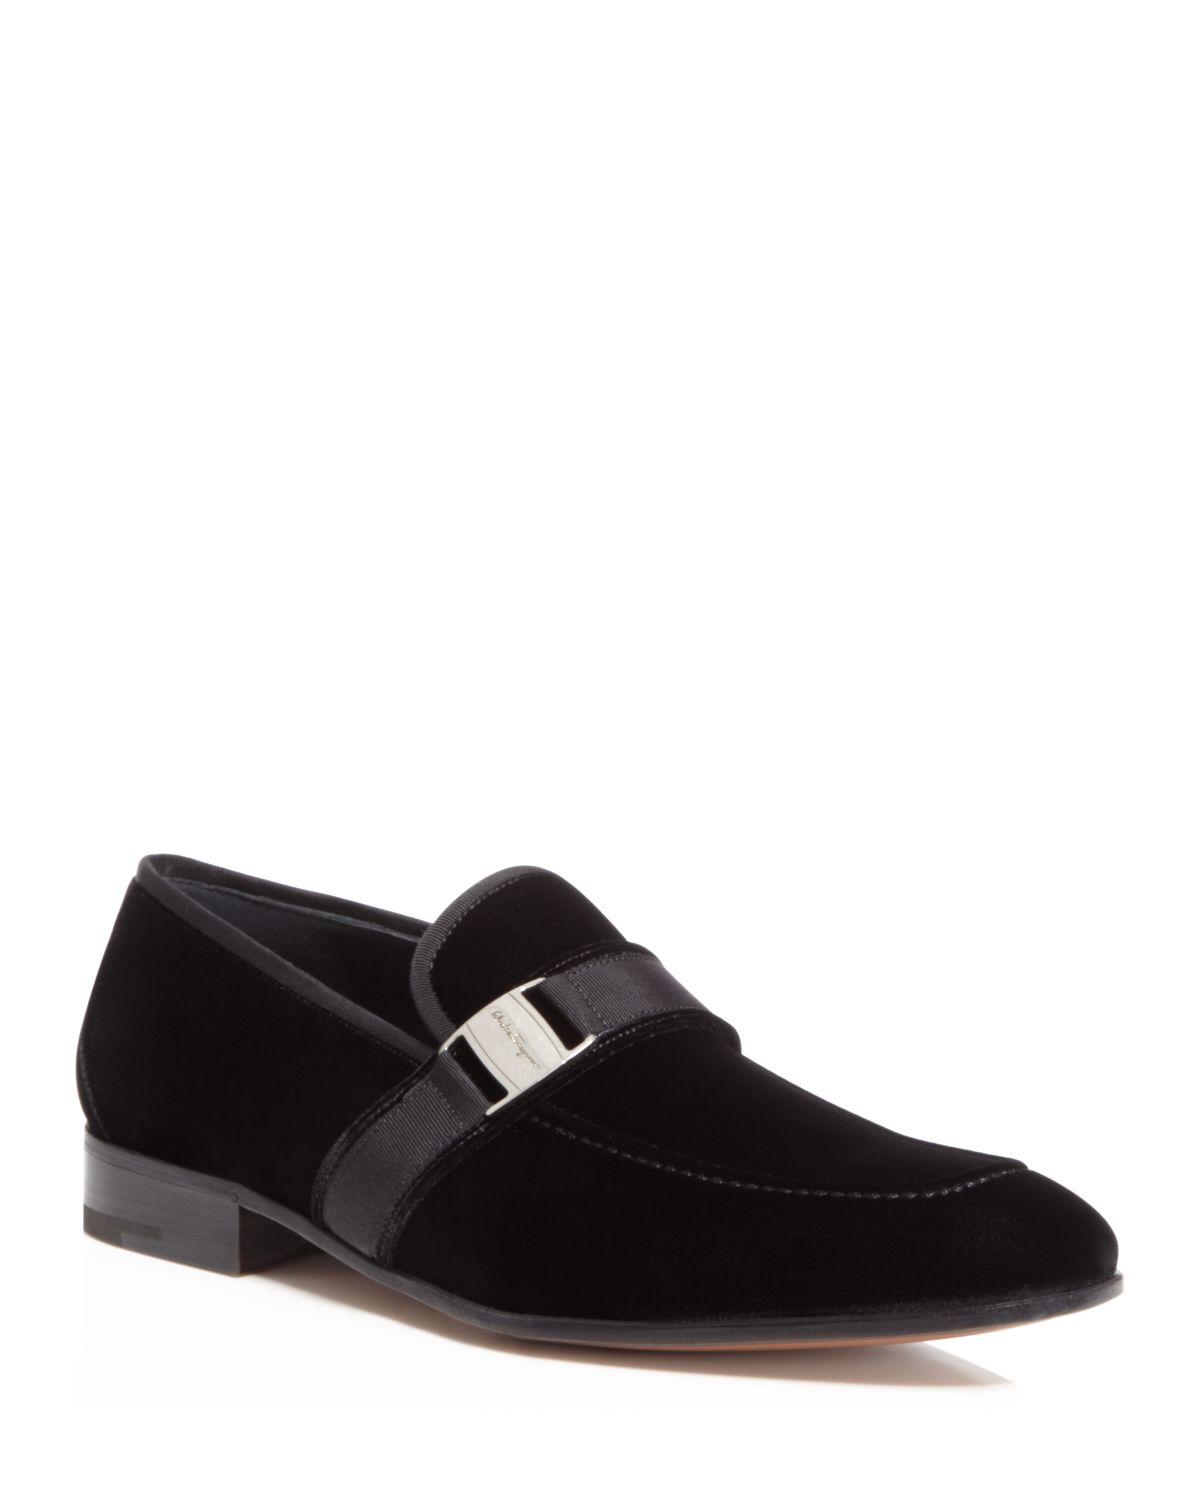 Salvatore FerragamoVara Ornament loafers